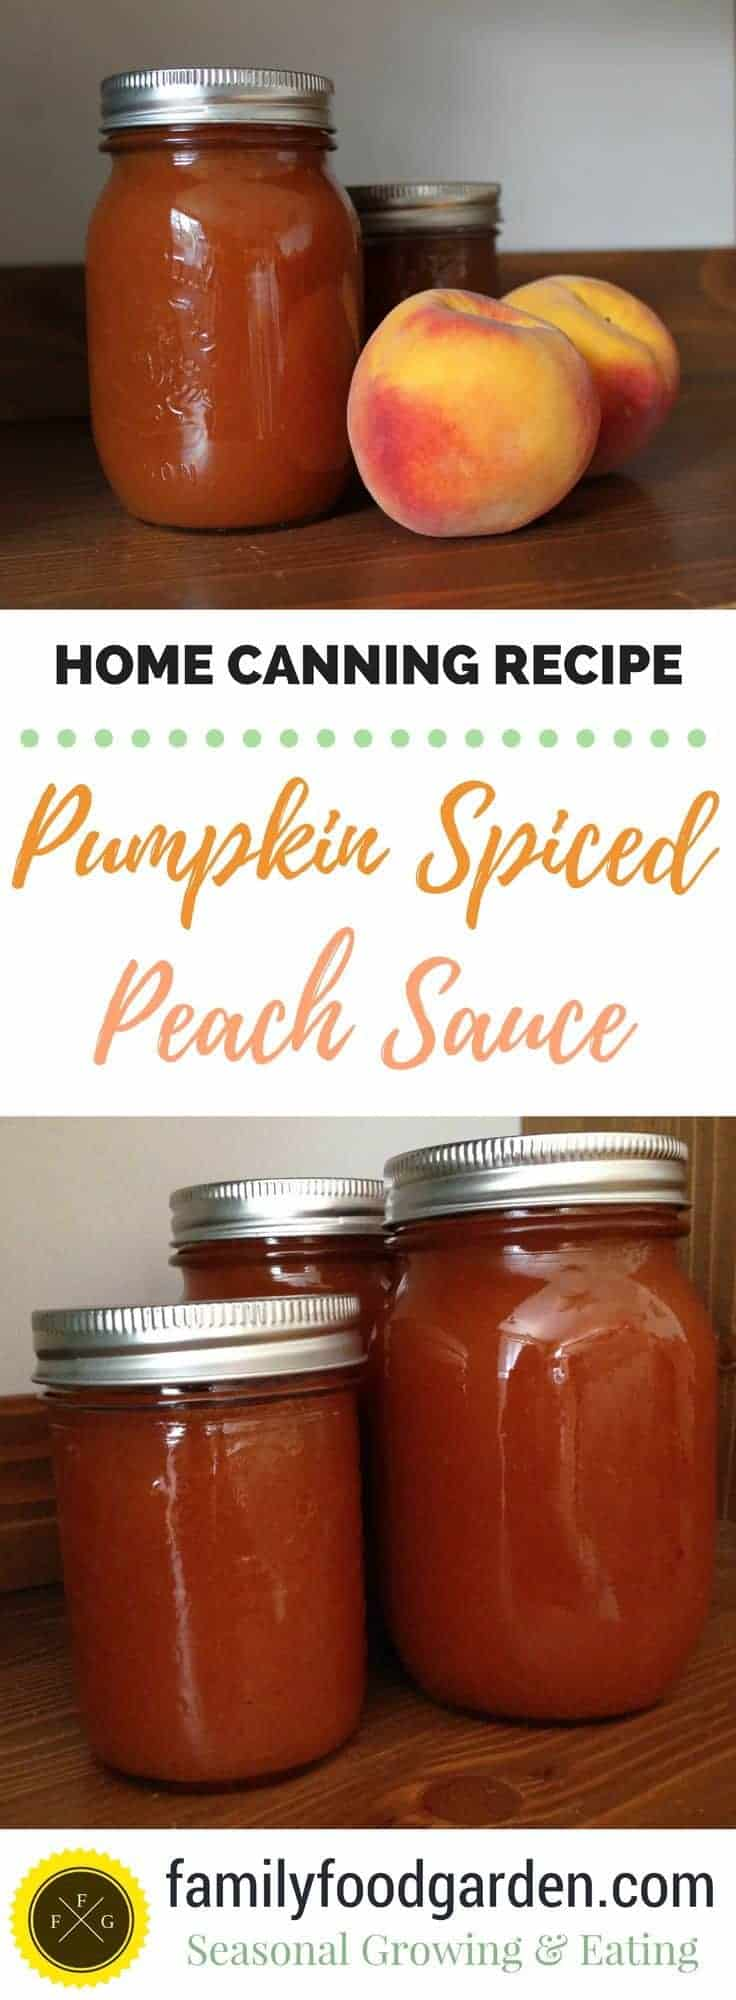 Canning Recipe: Pumpkin Spiced Peach Sauce